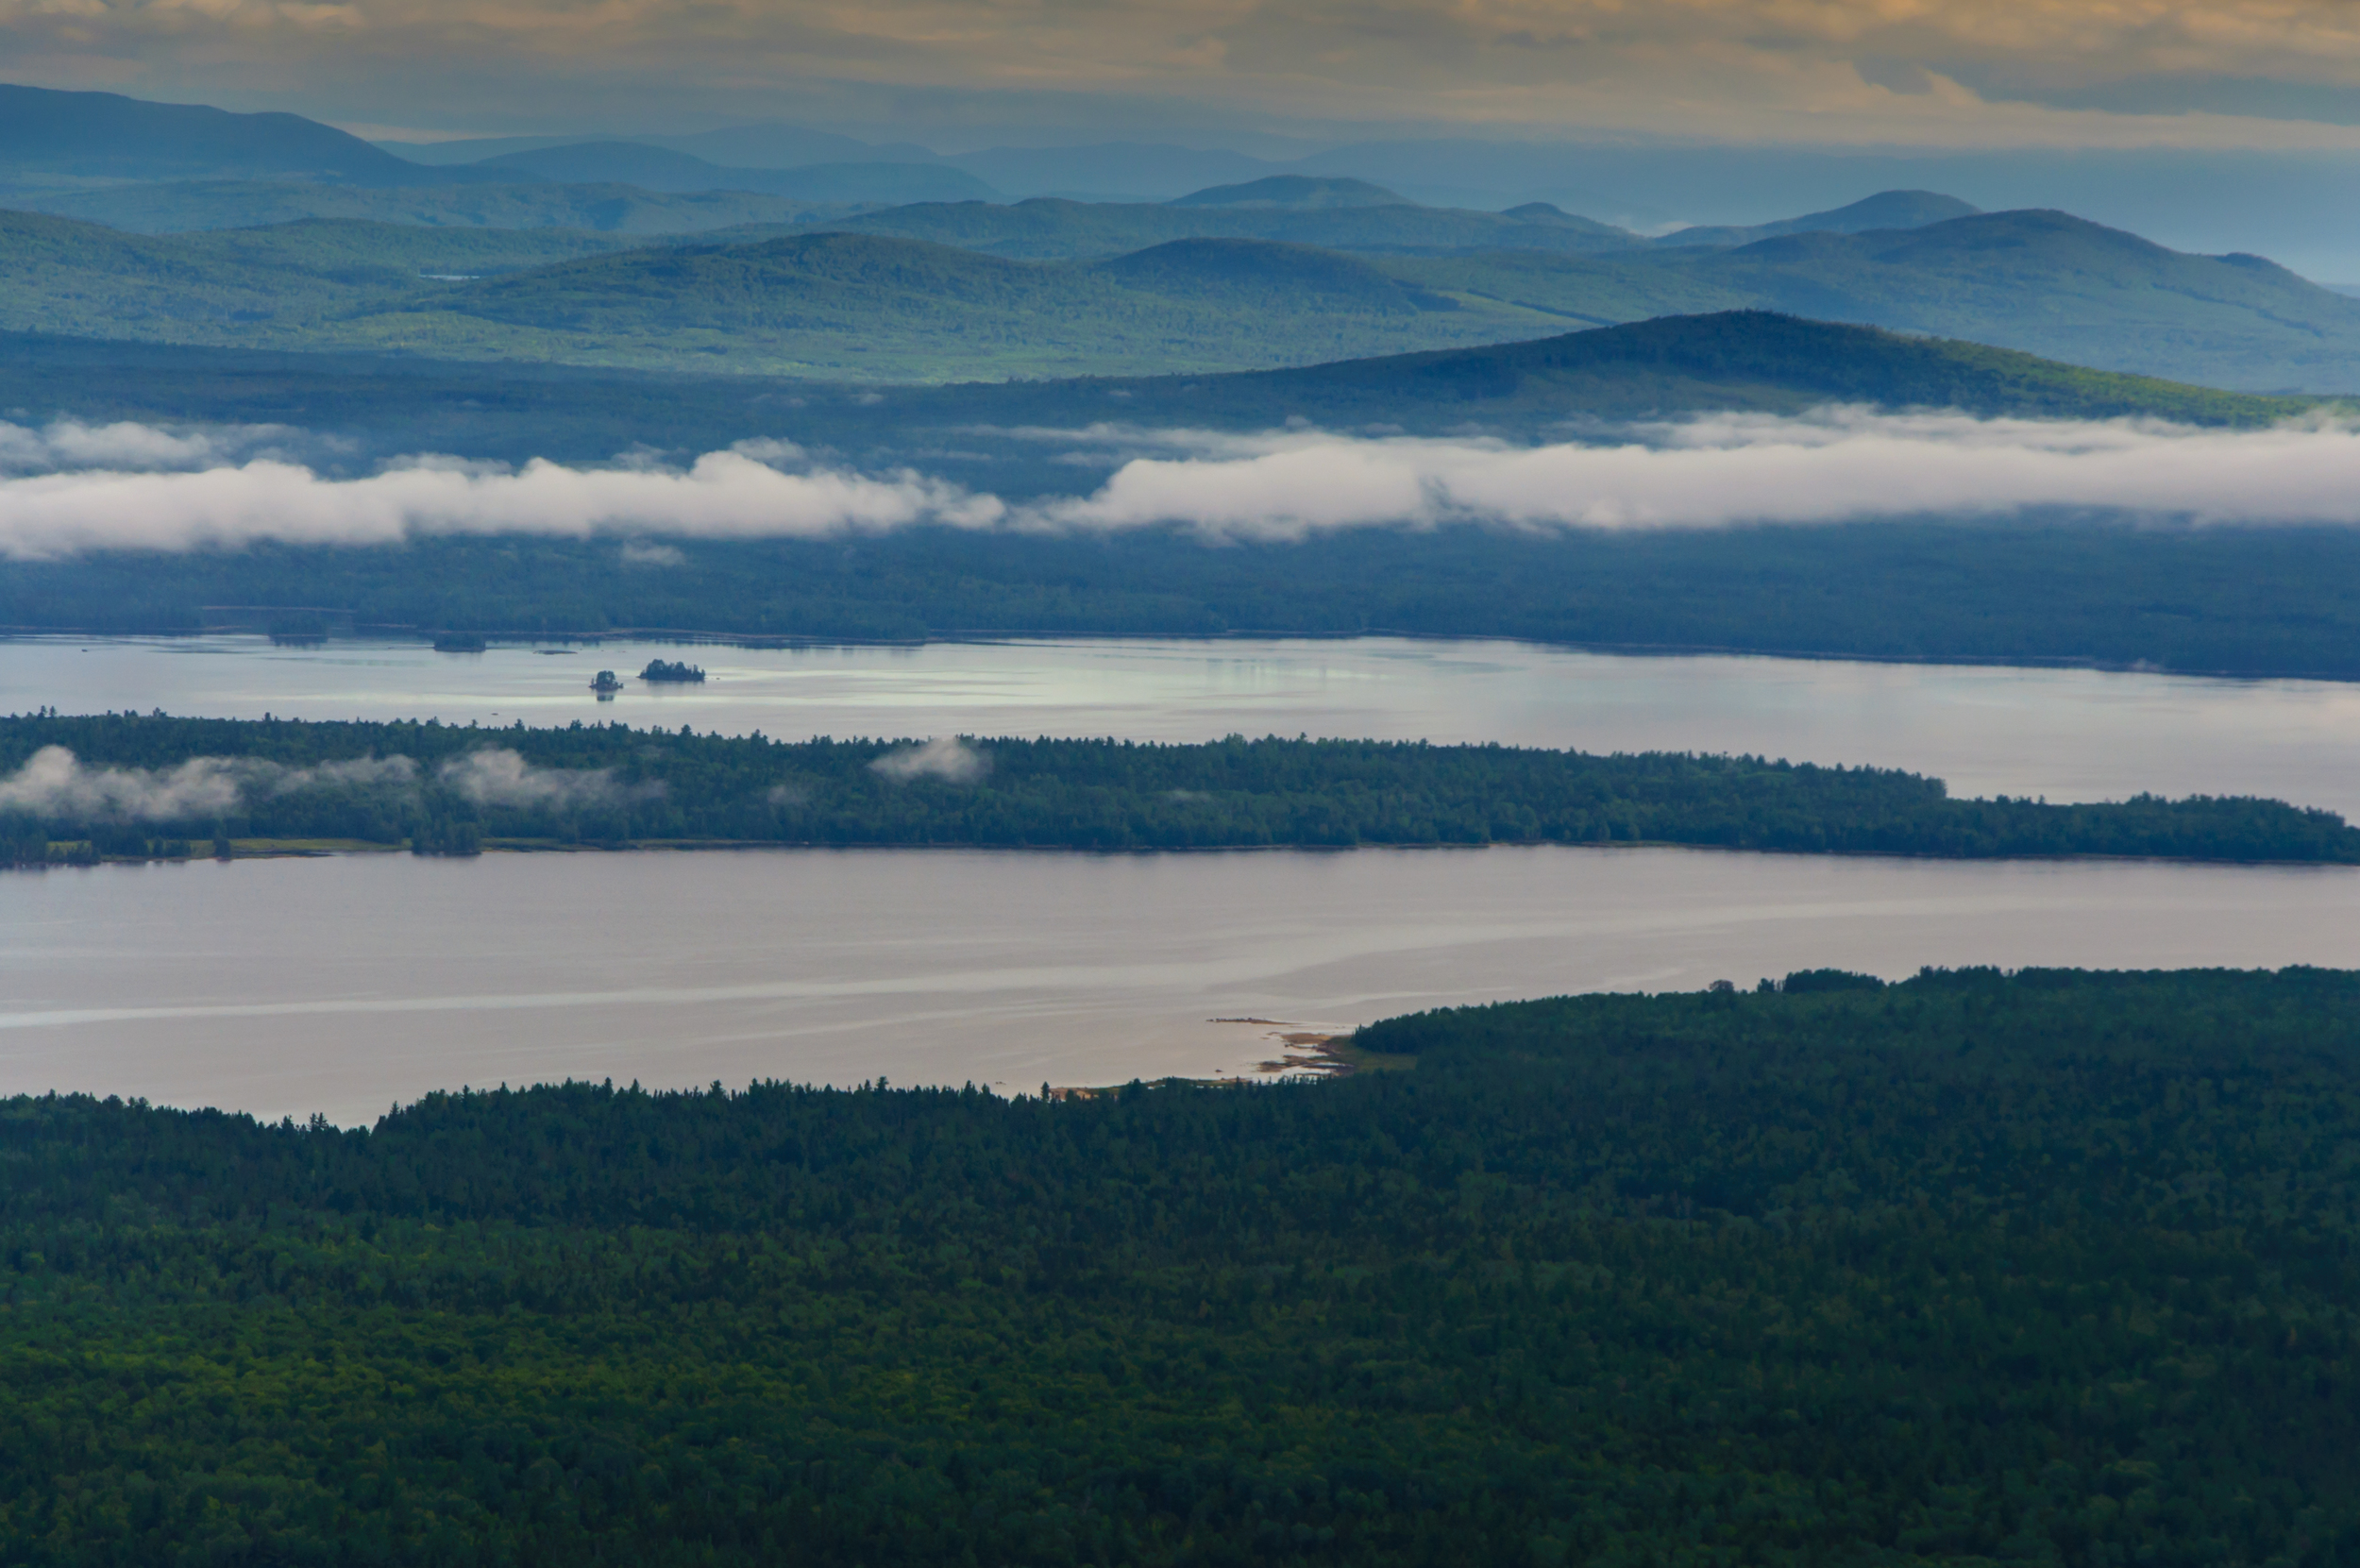 Early Morning from Cranberry Peak,Bigelow Mountain Range, Maine, USA August 2015